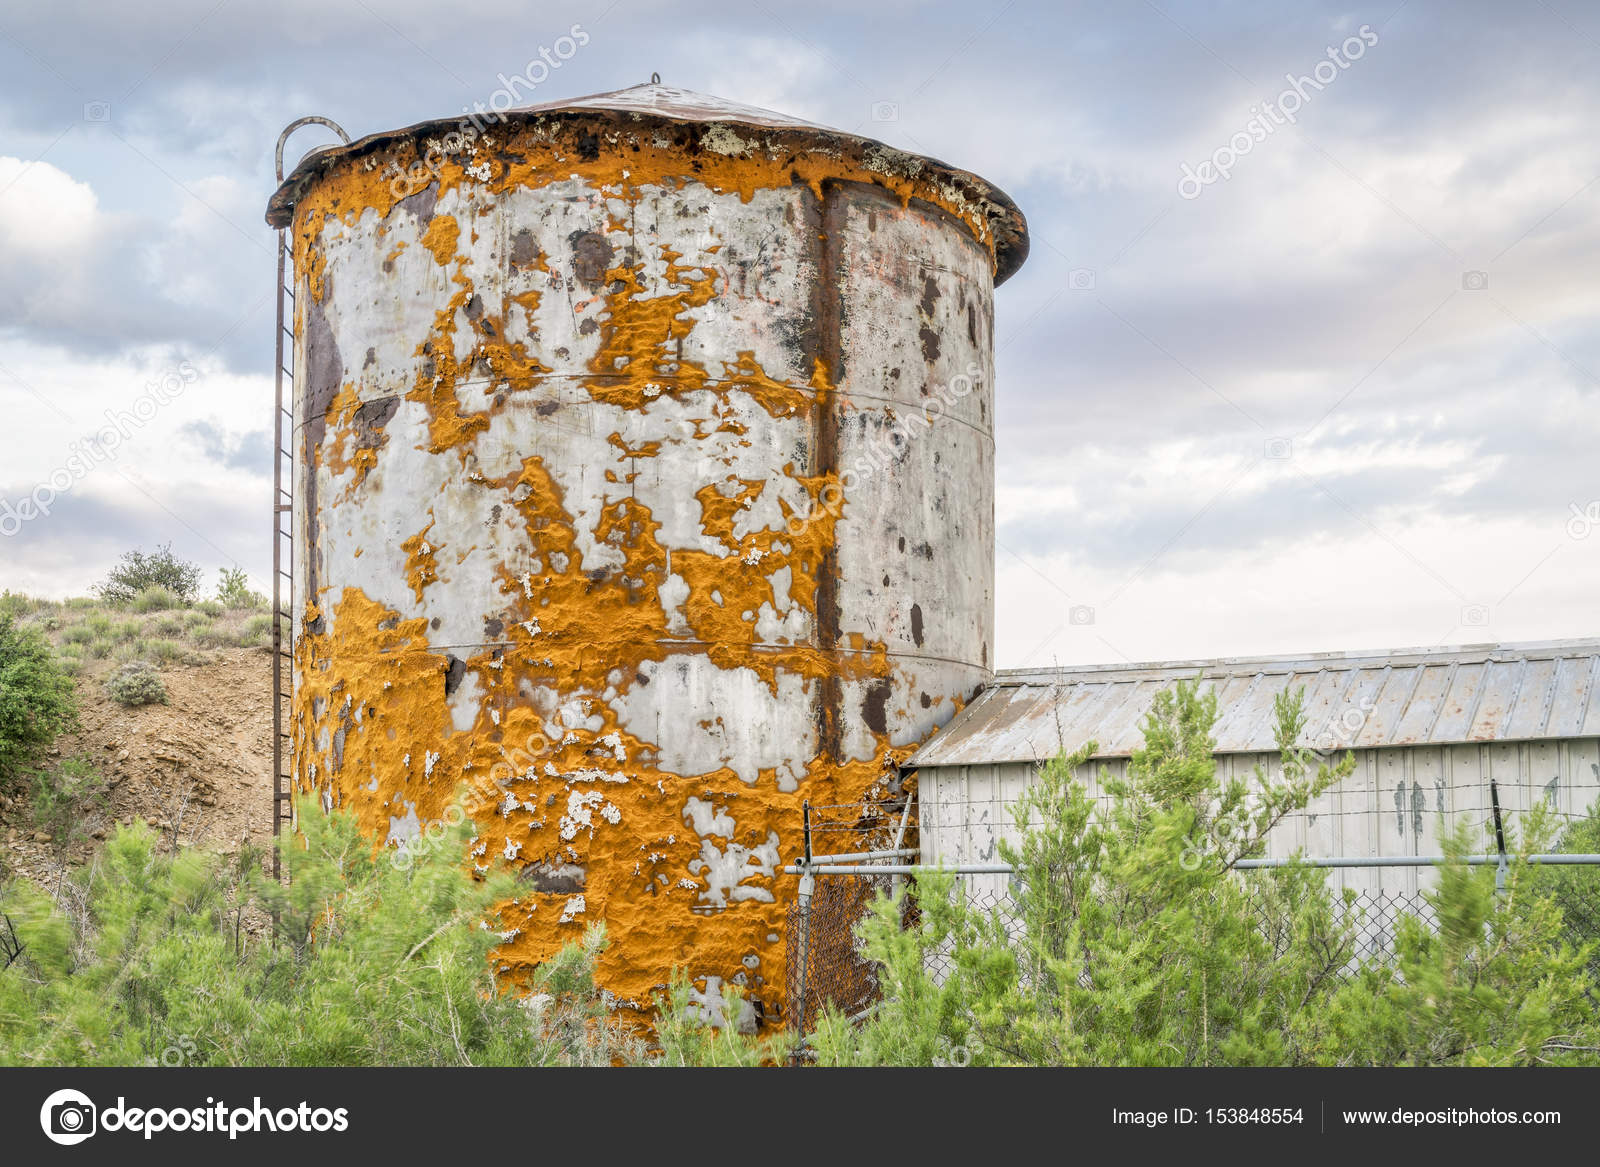 Old water tank covered by lichen near Thompson Springs at Book Cliffs in eastern Utah u2014 Photo by PixelsAway & old water tank covered by lichen u2014 Stock Photo © PixelsAway #153848554